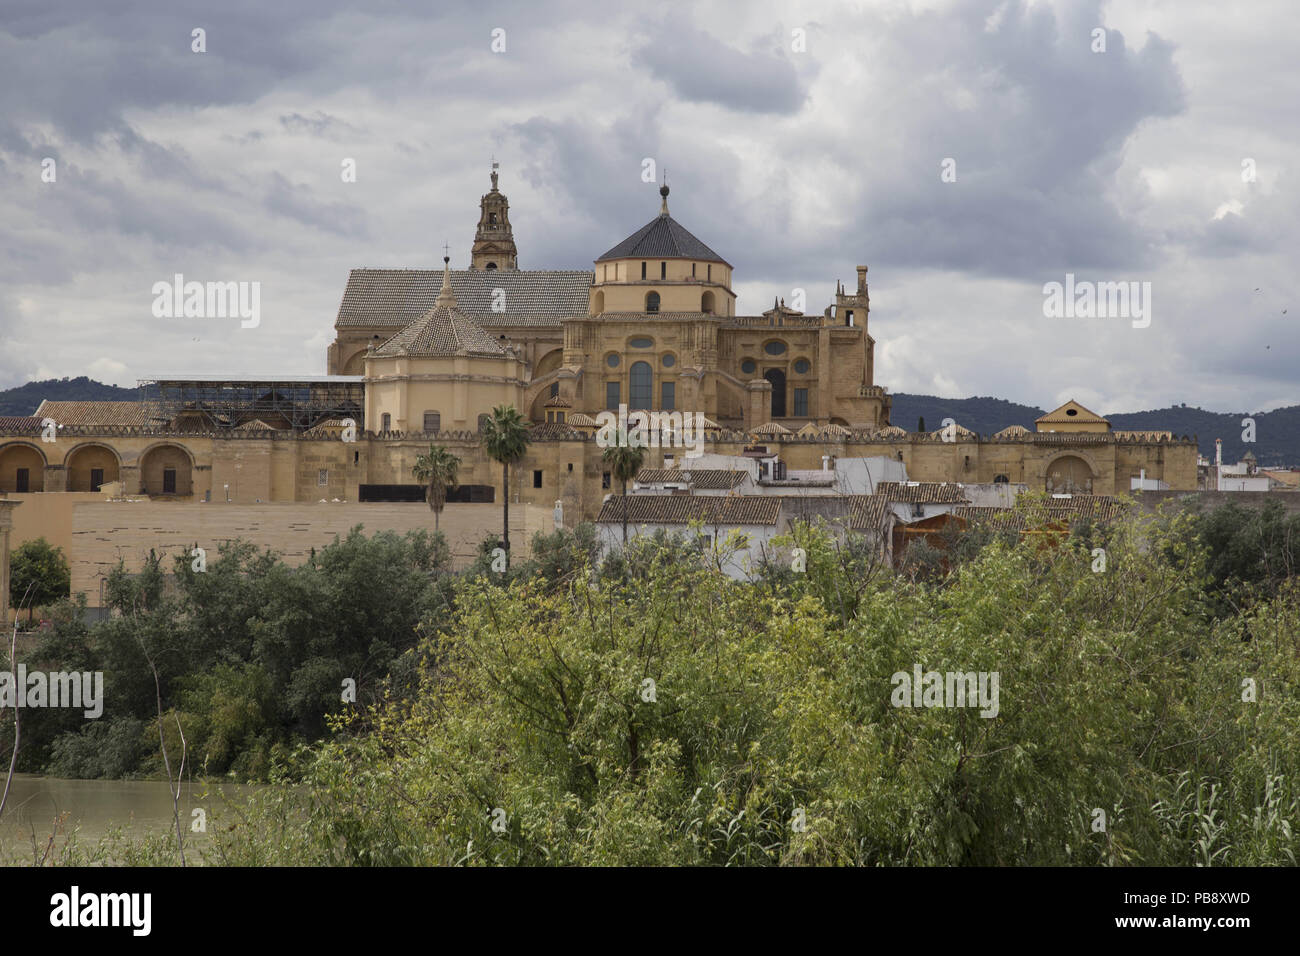 June 10, 2018 - CóRdoba, Spain - Mosque- Cathedral of Córdoba by day.Córdoba was the capital of the Later Hispania in the times of the Roman Republic, or of the Bética province during the Roman Empire and the Caliphate of Córdoba during the Muslim era. Credit: Lito Lizana/SOPA Images/ZUMA Wire/Alamy Live News Stock Photo